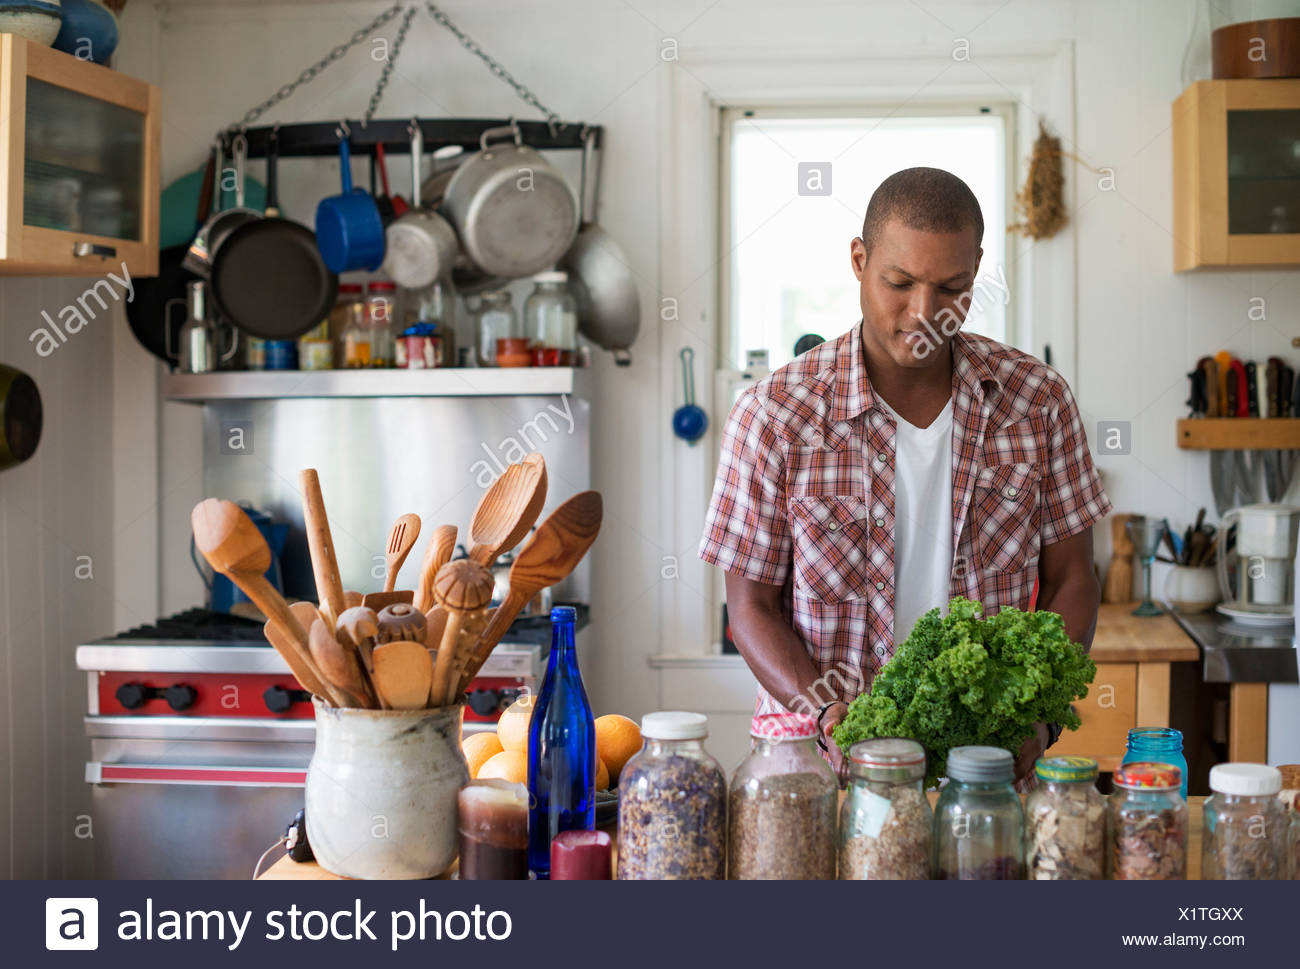 A young man in a kitchen preparing salad leaves and vegetables. - Stock Image